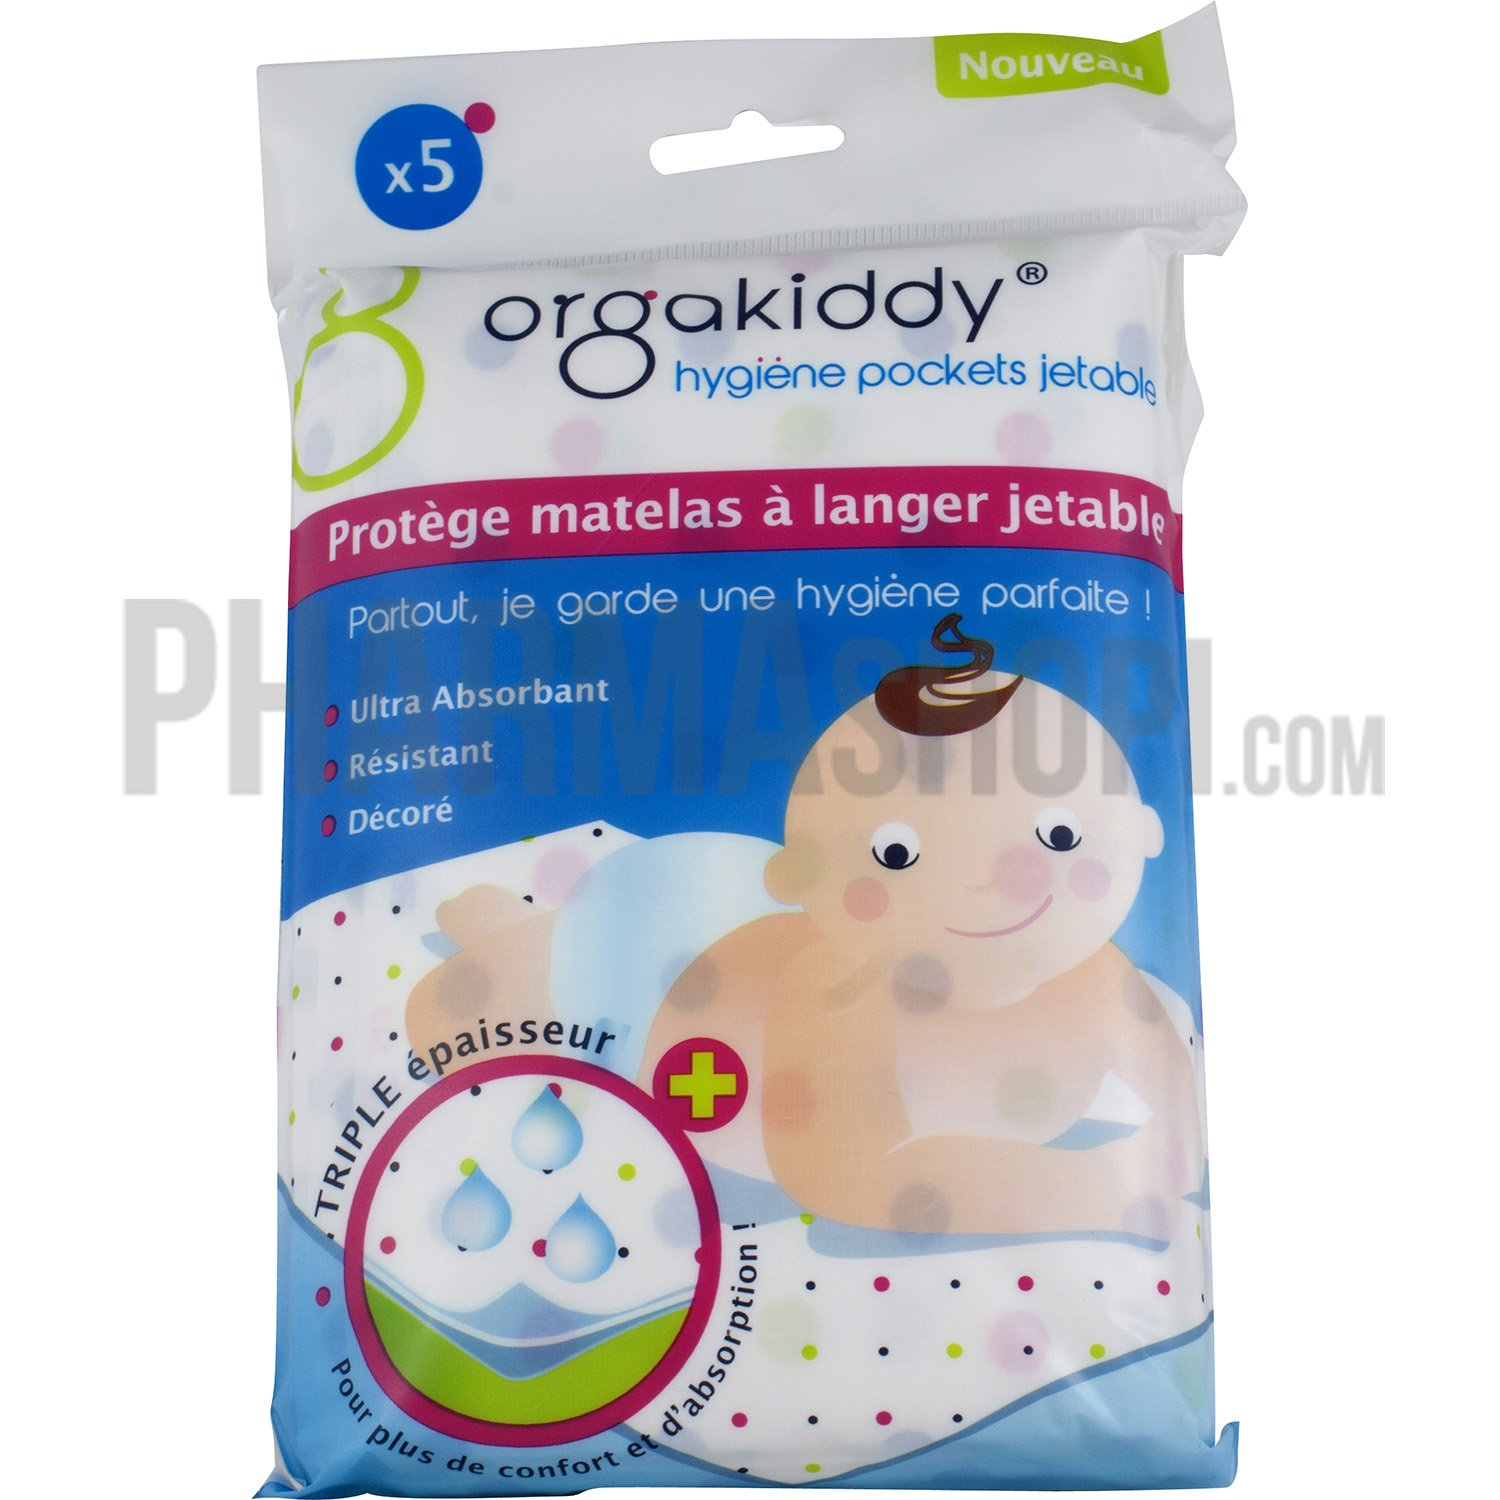 Orgakiddy prot ge matelas langer jetable orgakiddy 5 for Protege matelas bebe